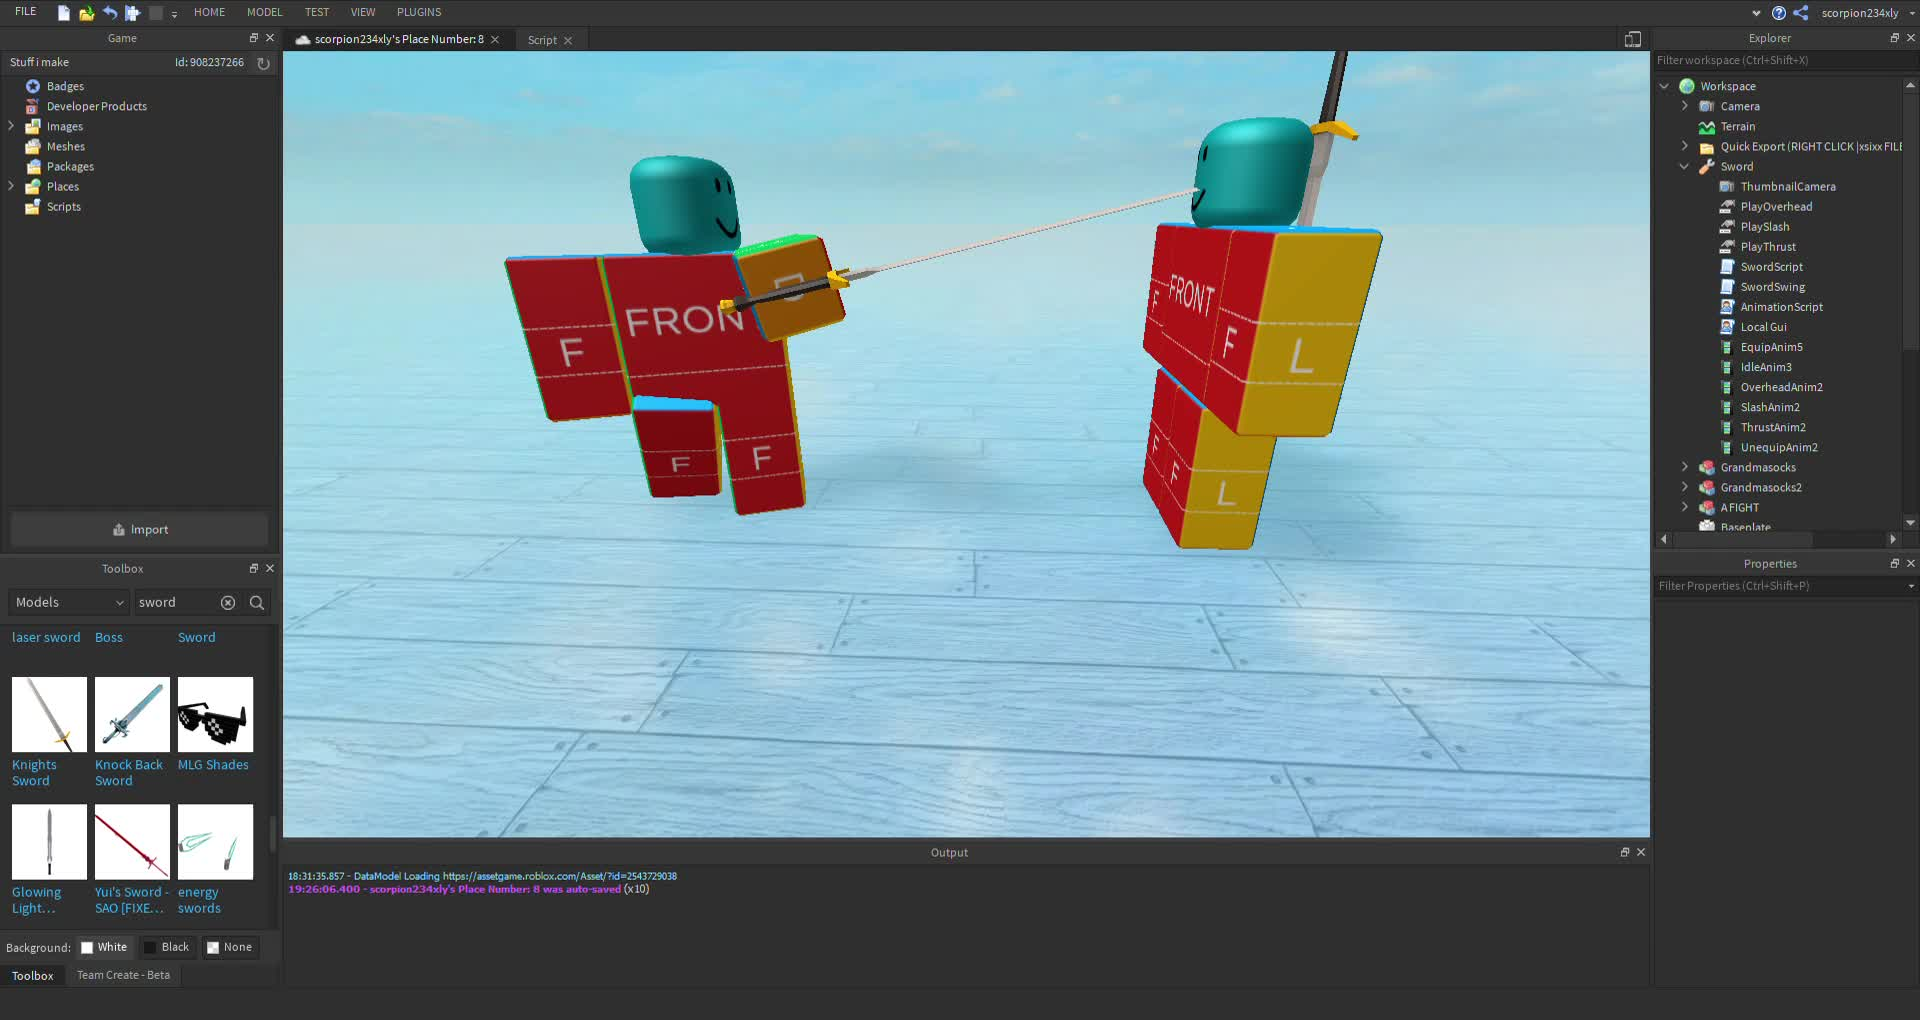 Published As Scorpion234xly S Place Number 8 Roblox Studio 2019